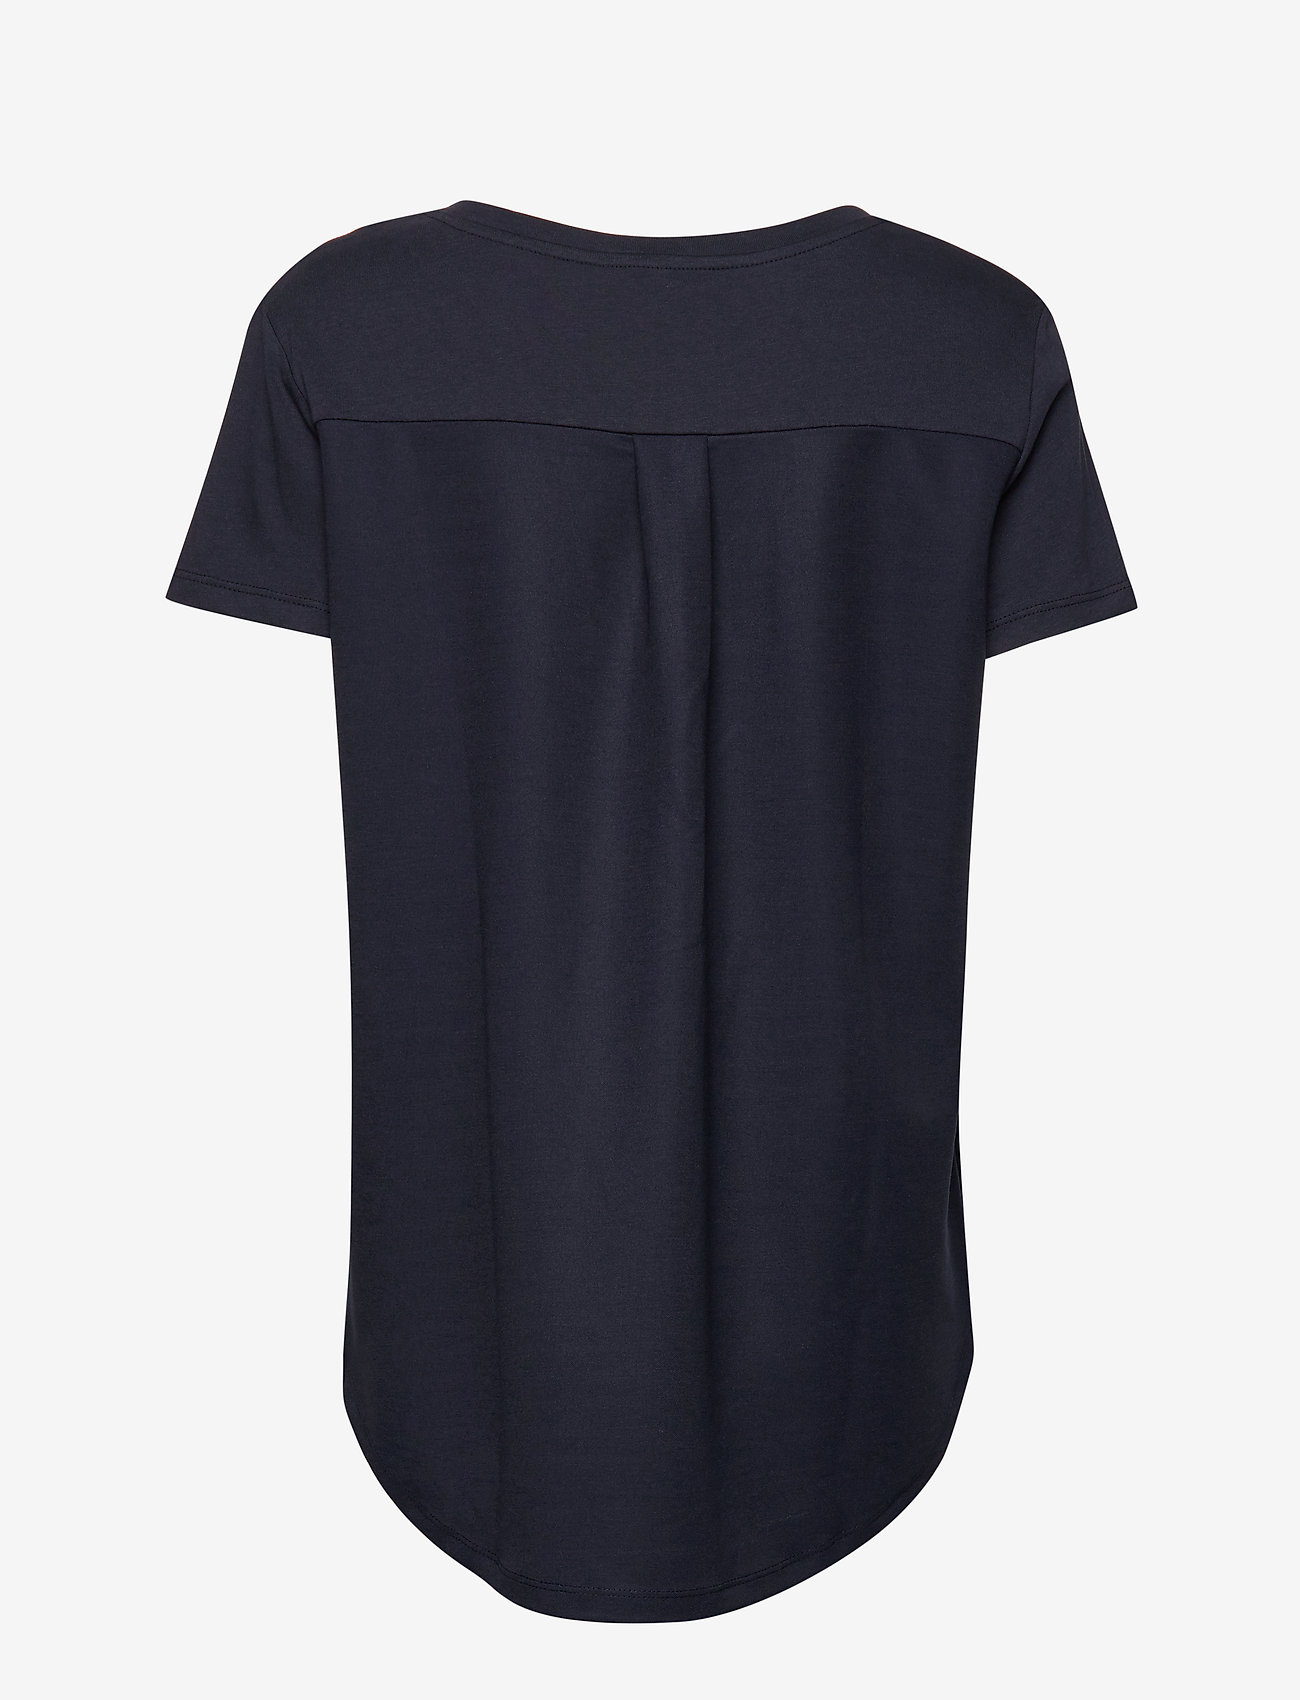 Esprit Casual - T-Shirts - basic t-shirts - navy - 1